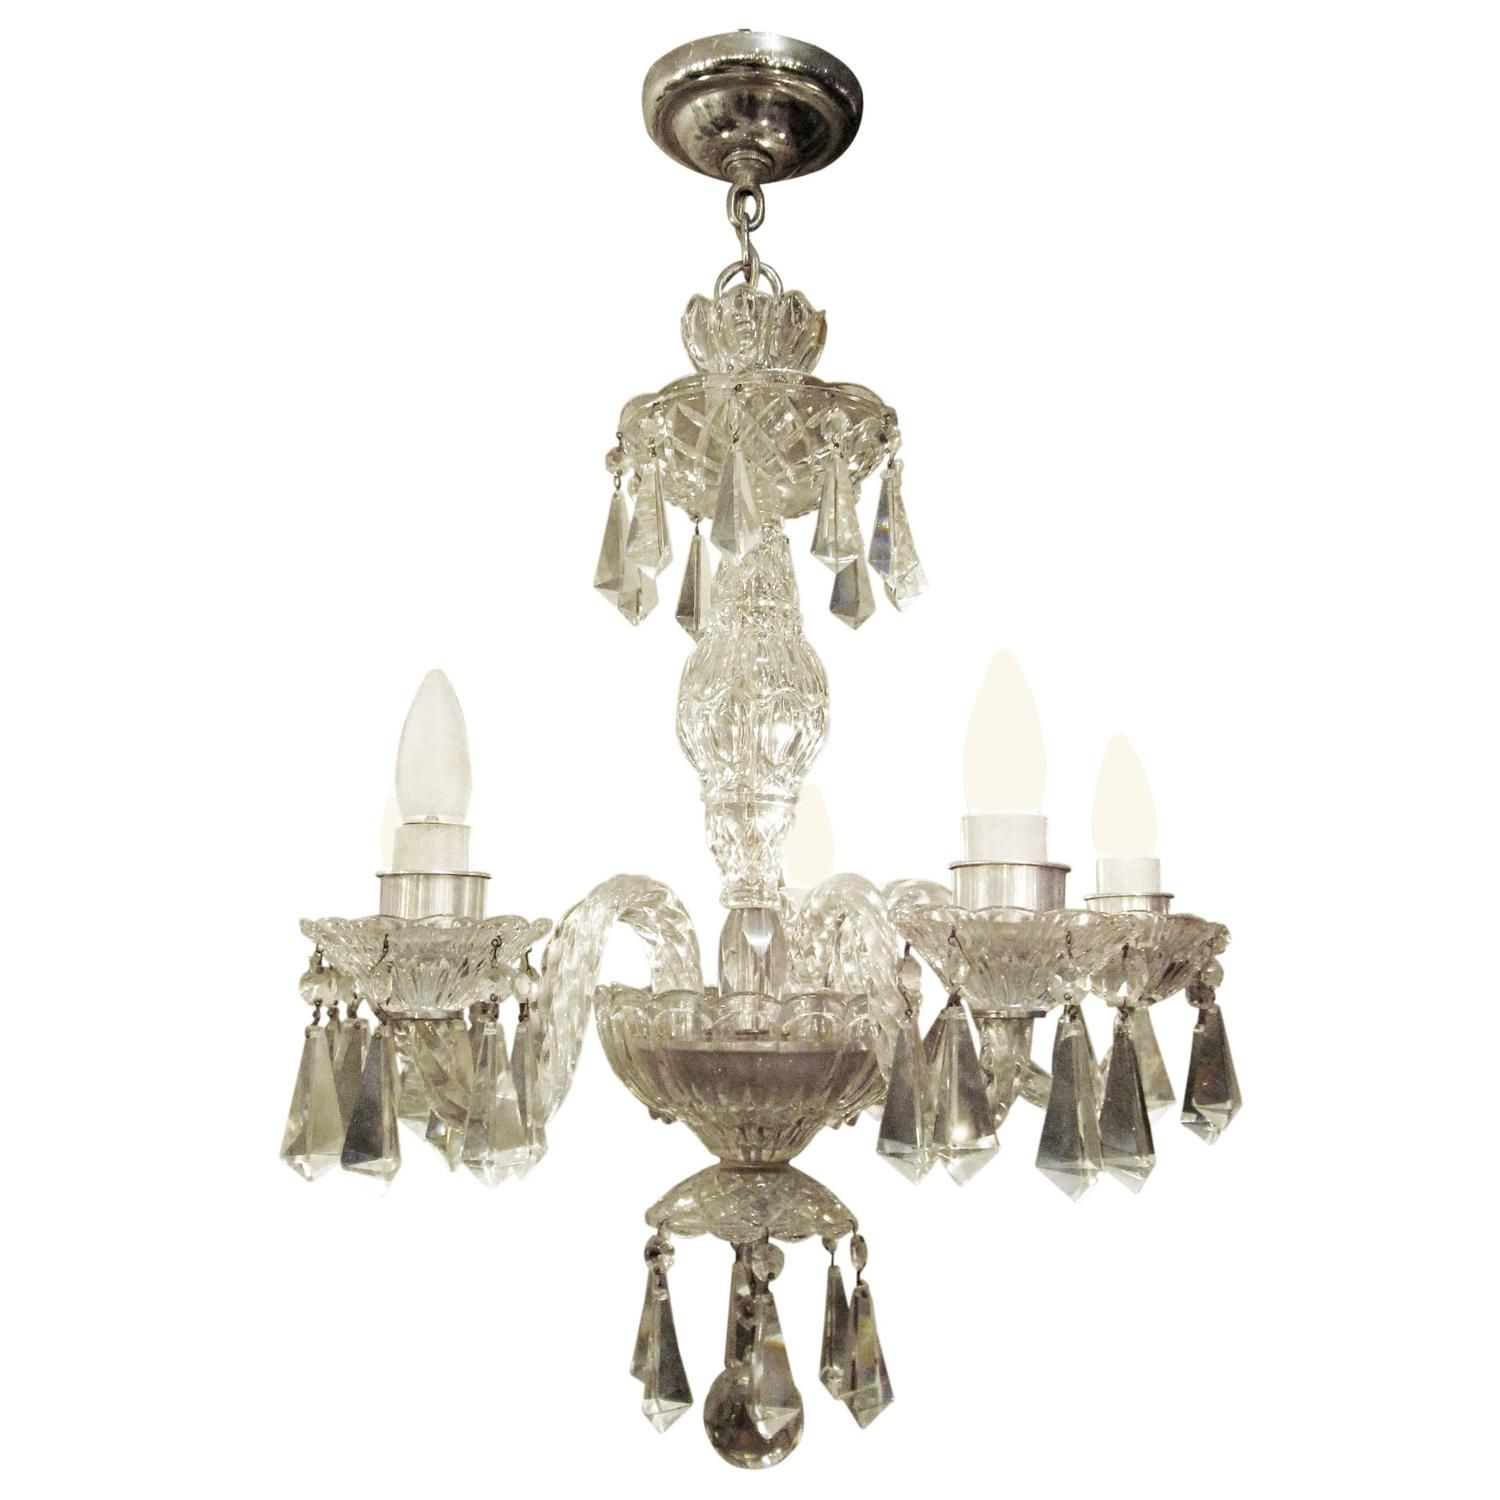 1940s five arm german lead crystal chandelier chandeliers arms 1940s five arm german lead crystal chandelier from a unique collection of antique and aloadofball Image collections